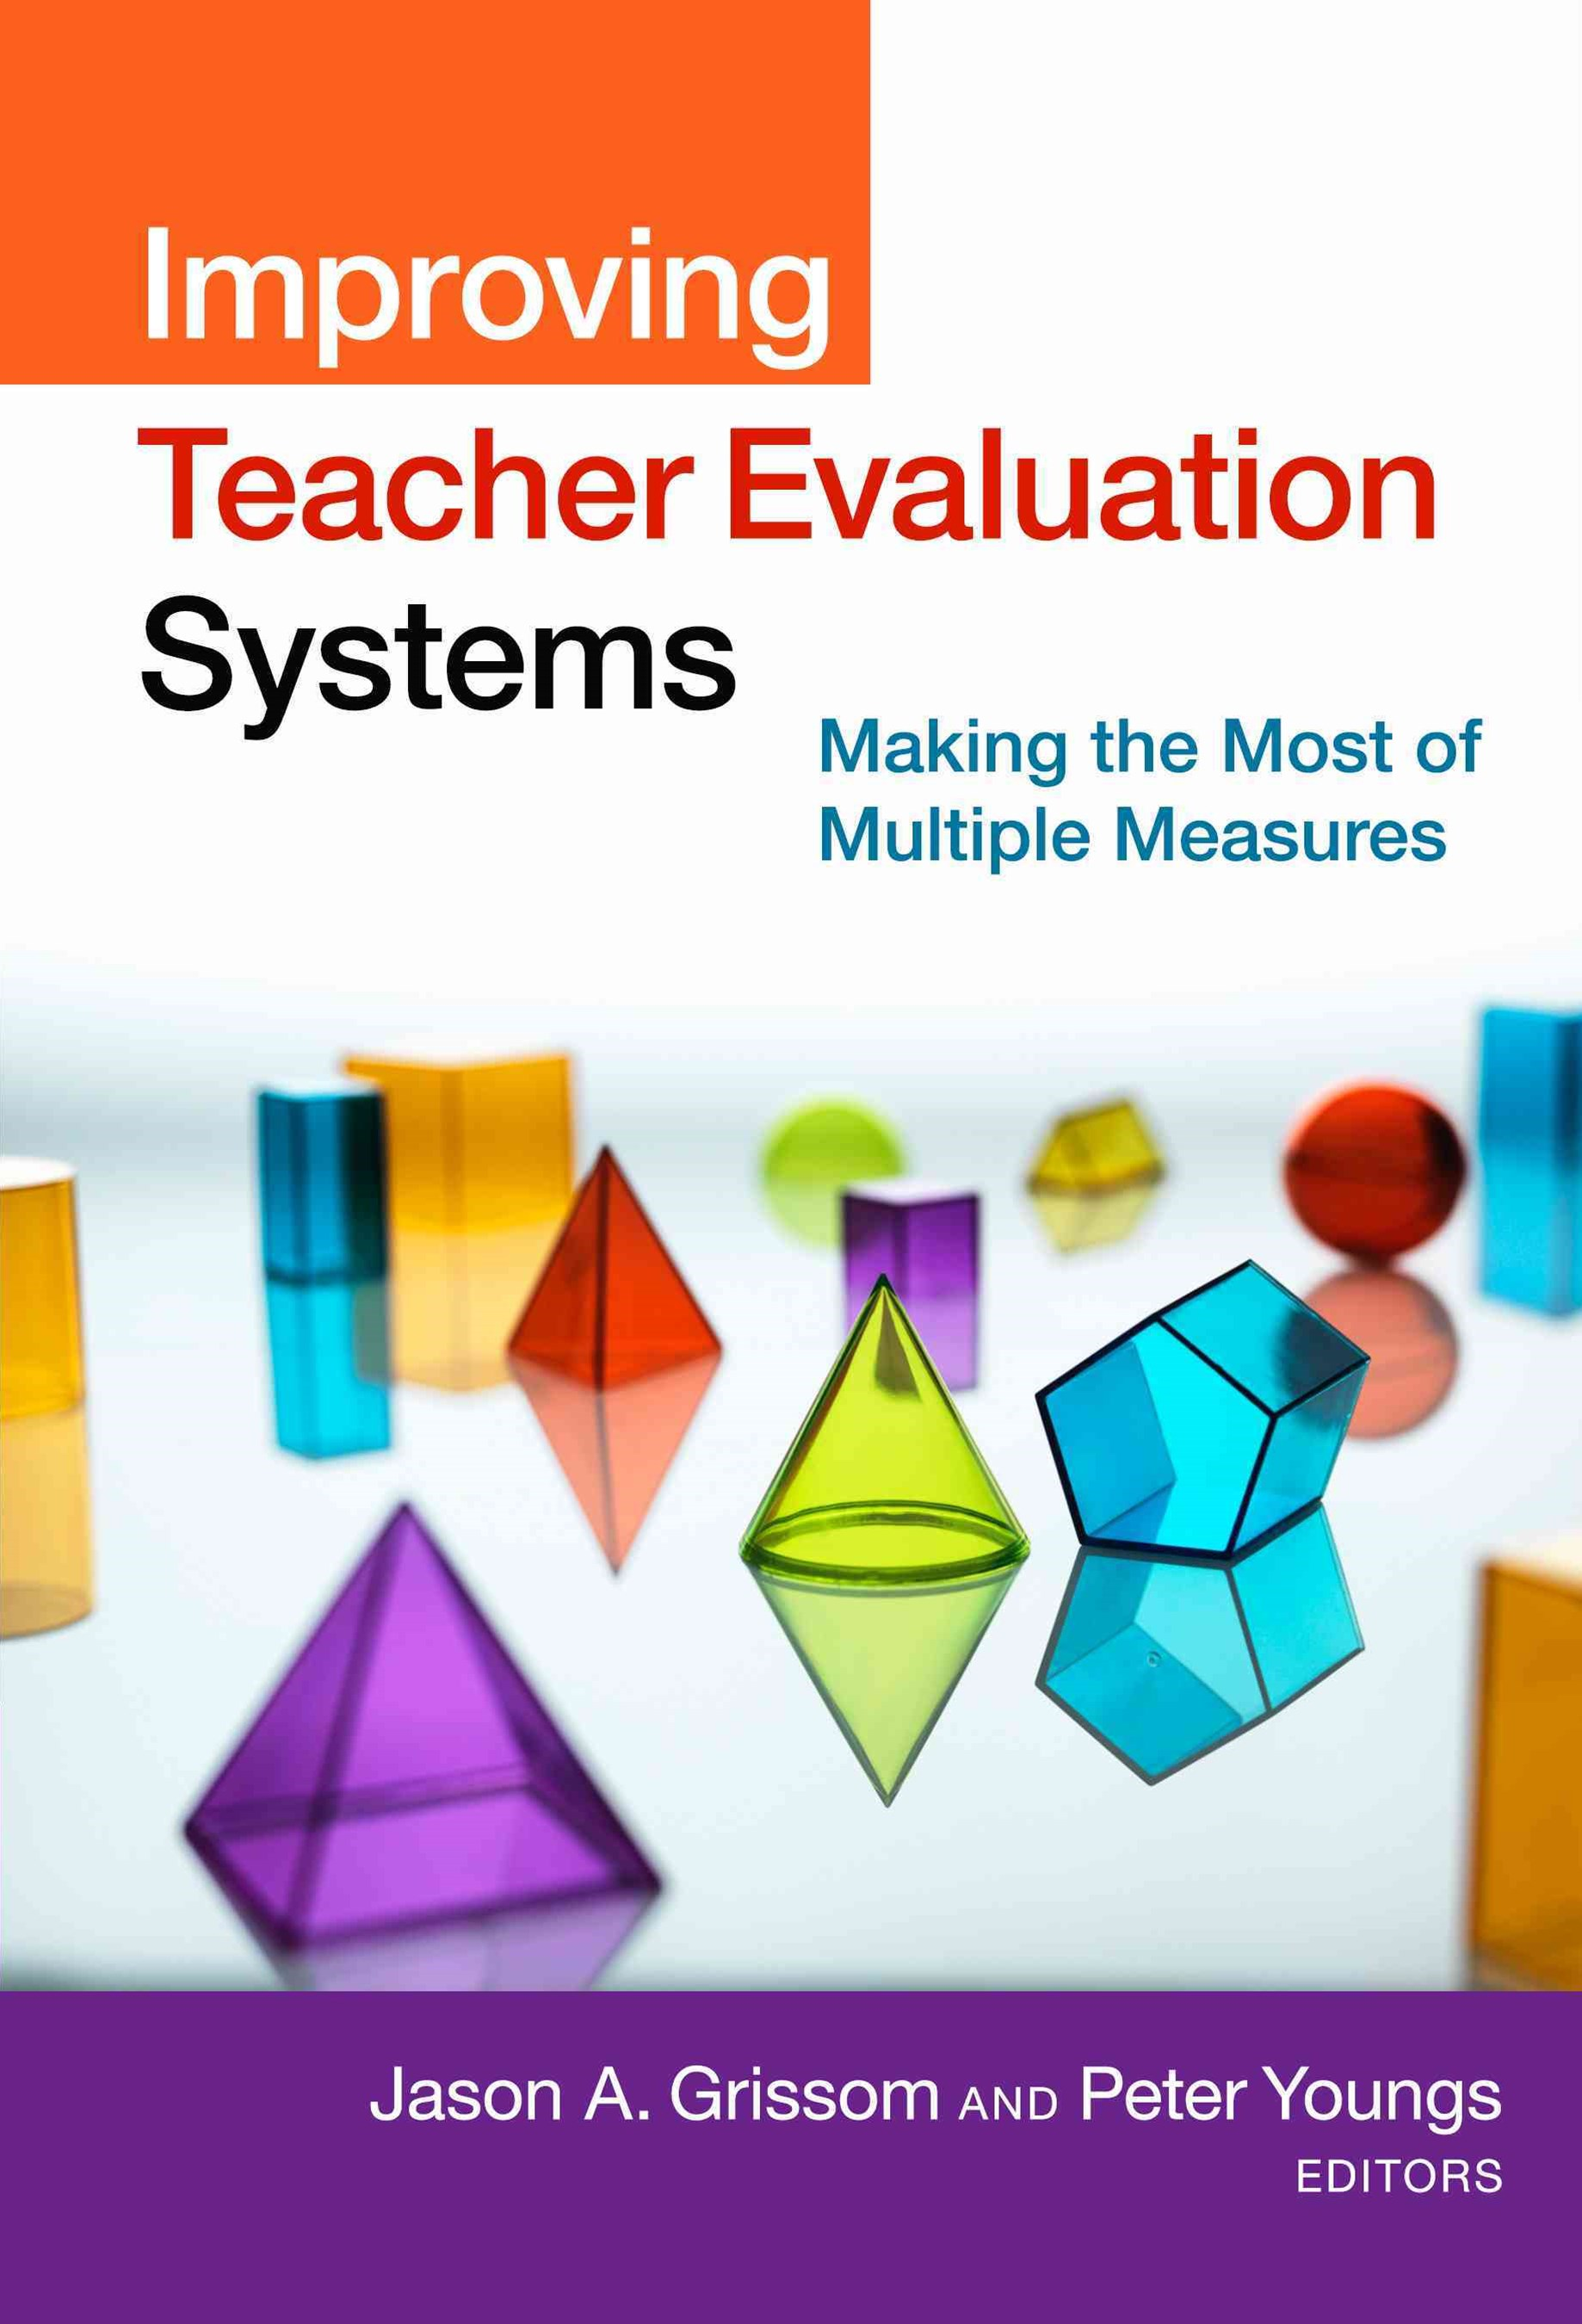 Improving Teacher Evaluation Systems